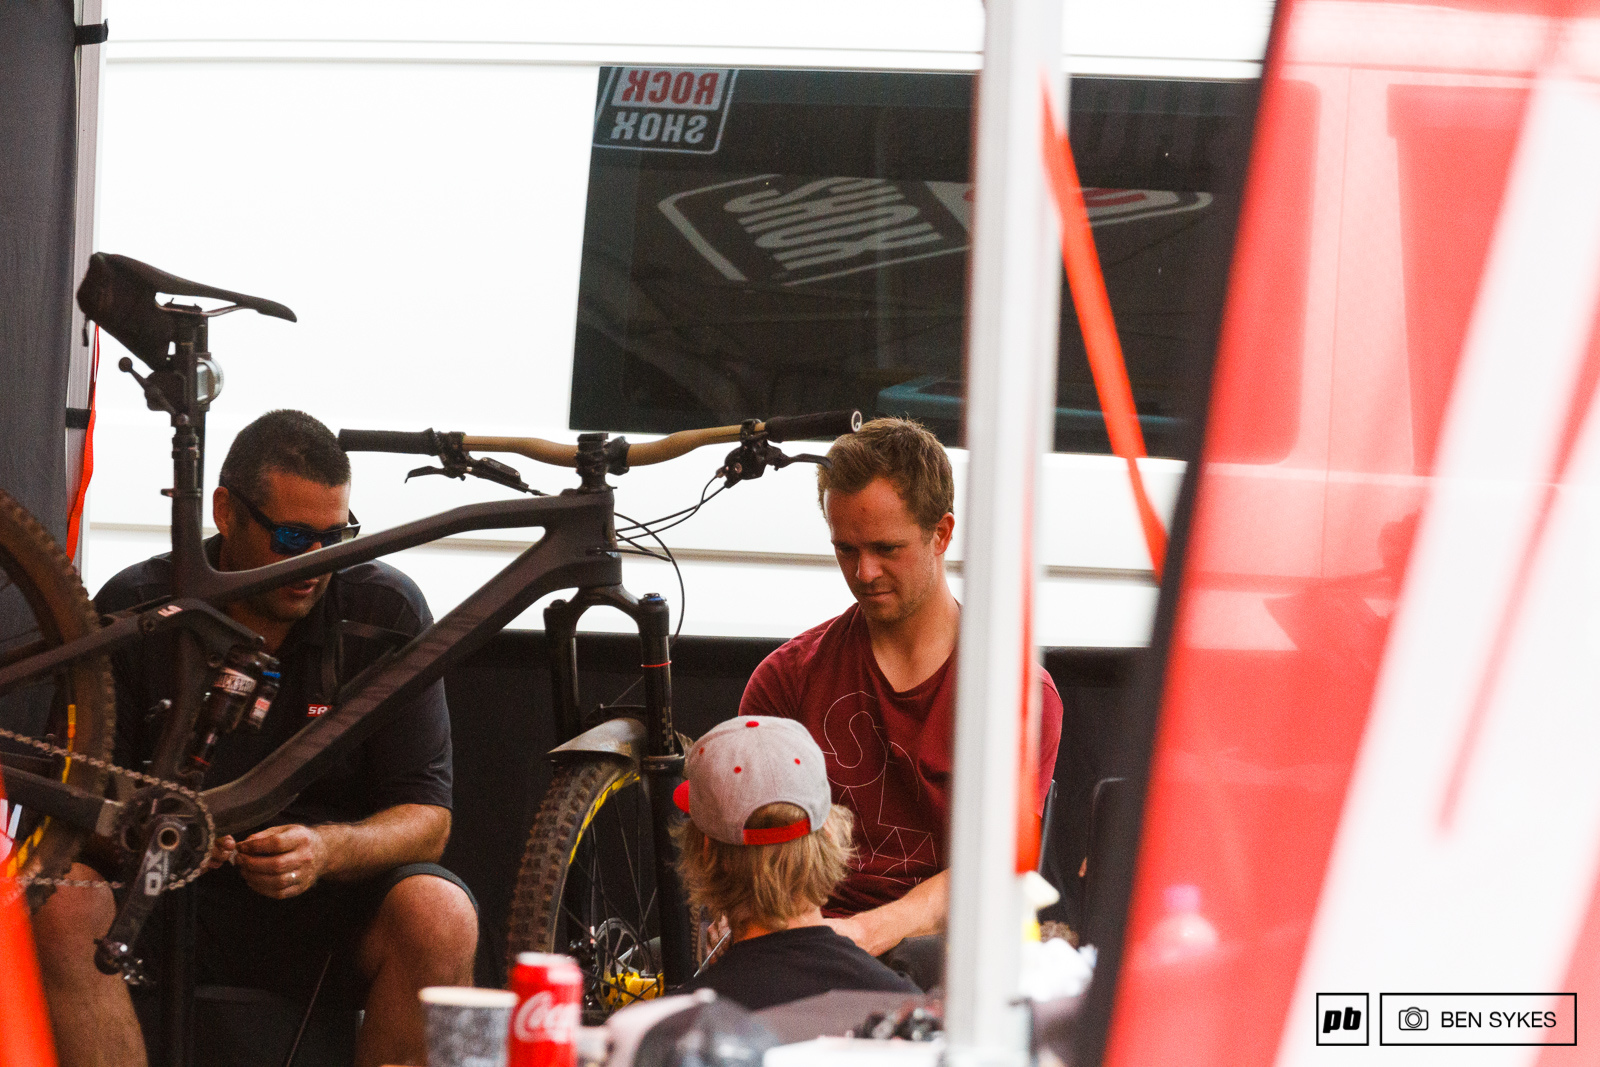 Brosnan enjoying some downtime in the pits.